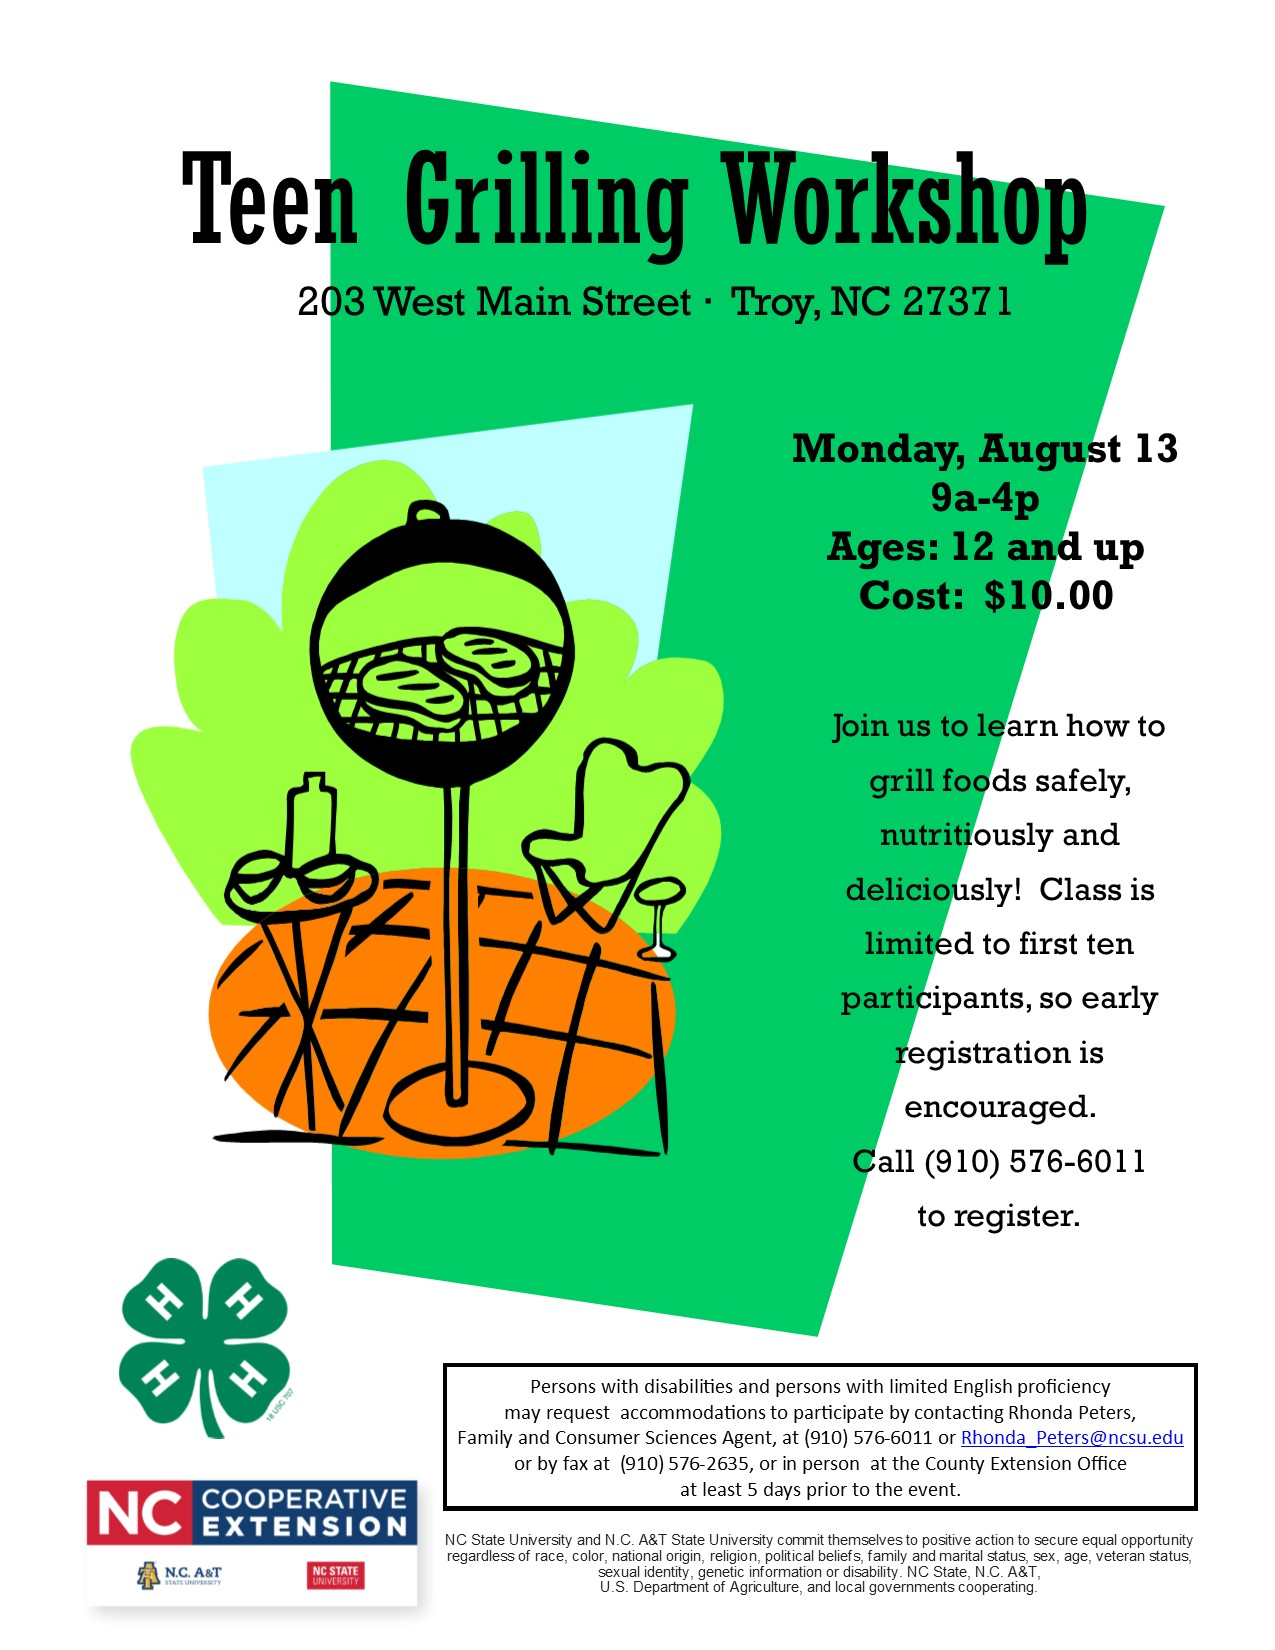 Teen Grilling Workshop flyer image